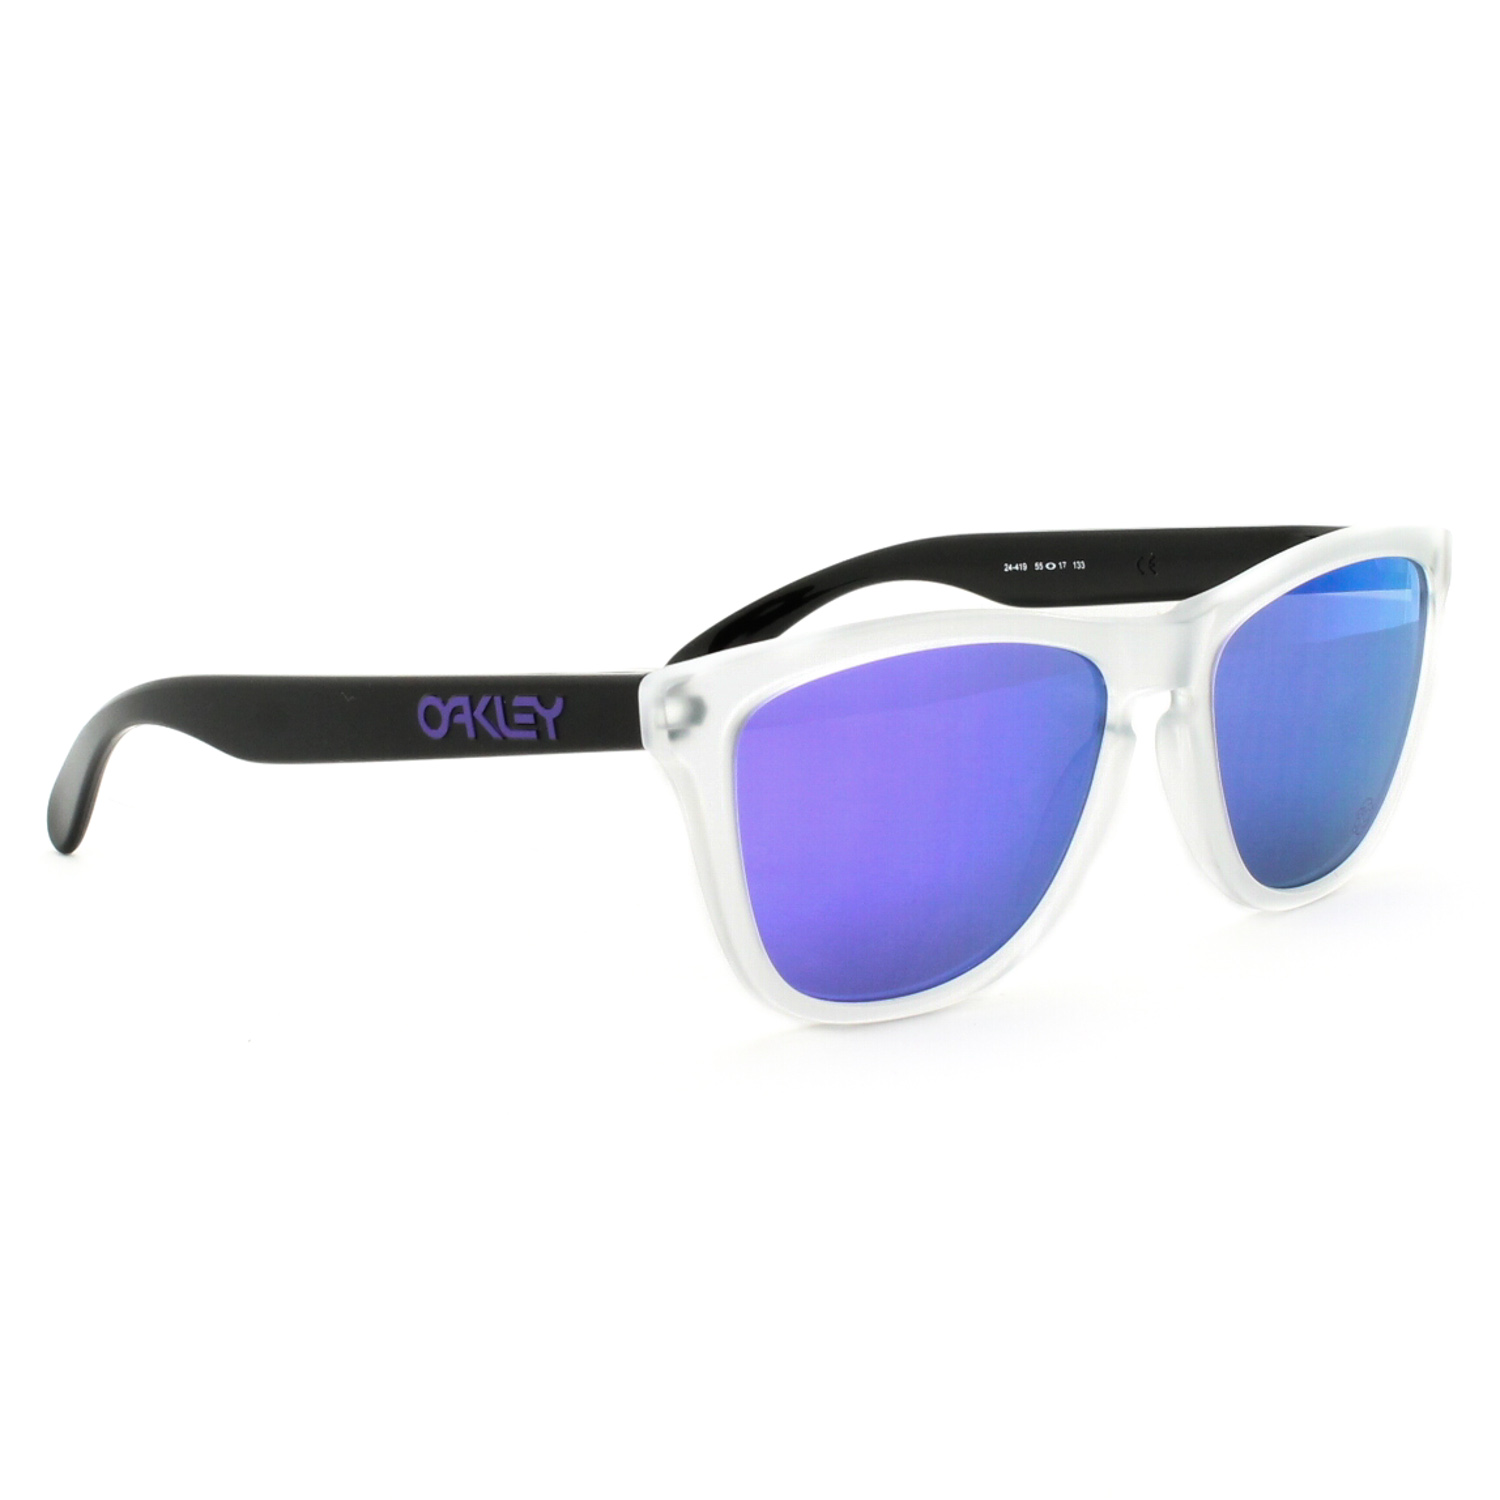 OAKLEY Heritage Frogskins Matte Clear / Violet Iridium 24-419 r8O6a